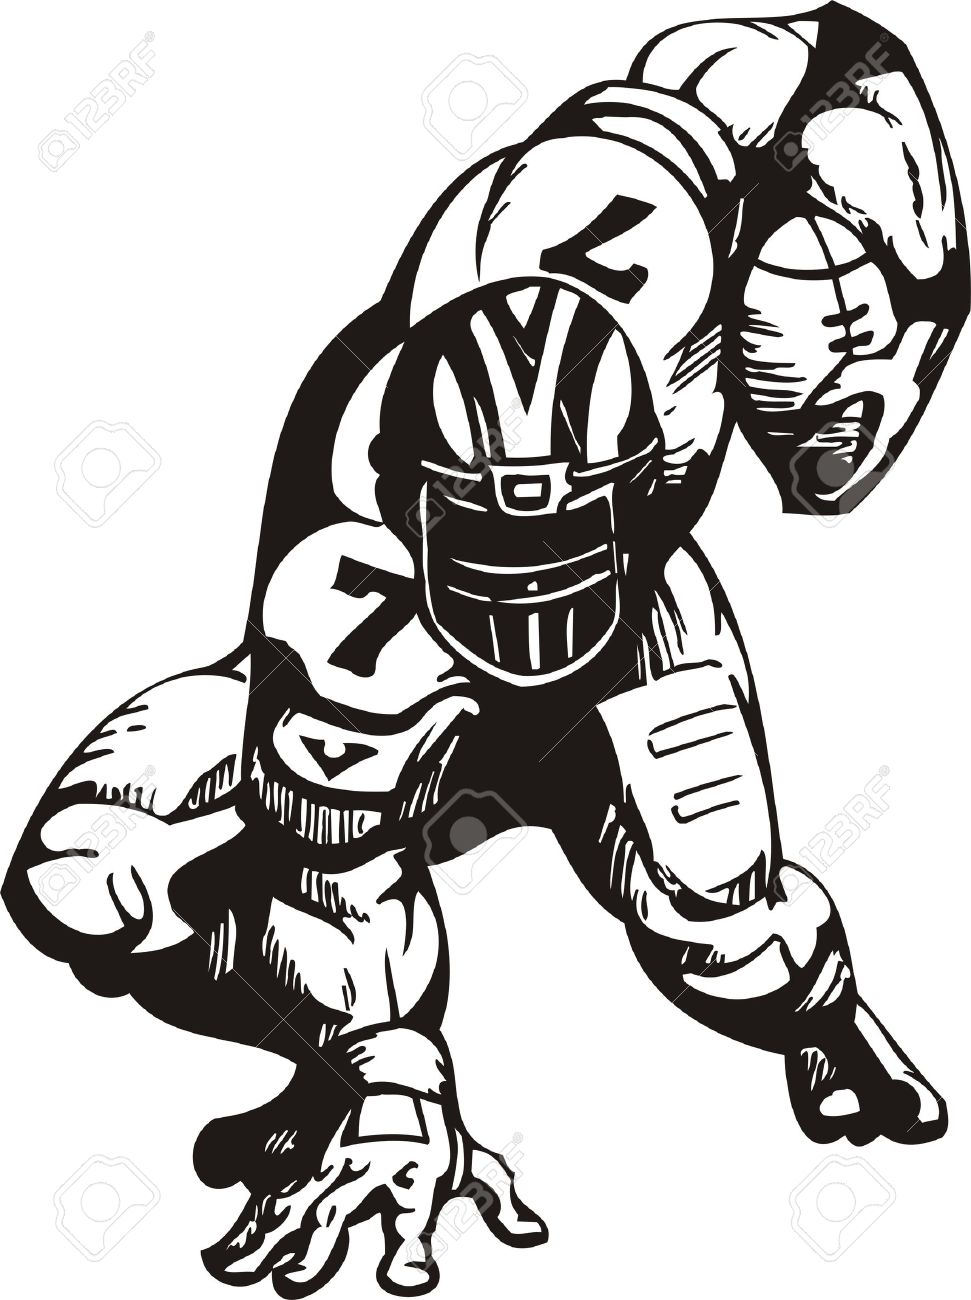 971x1300 Rear Clipart Football Player